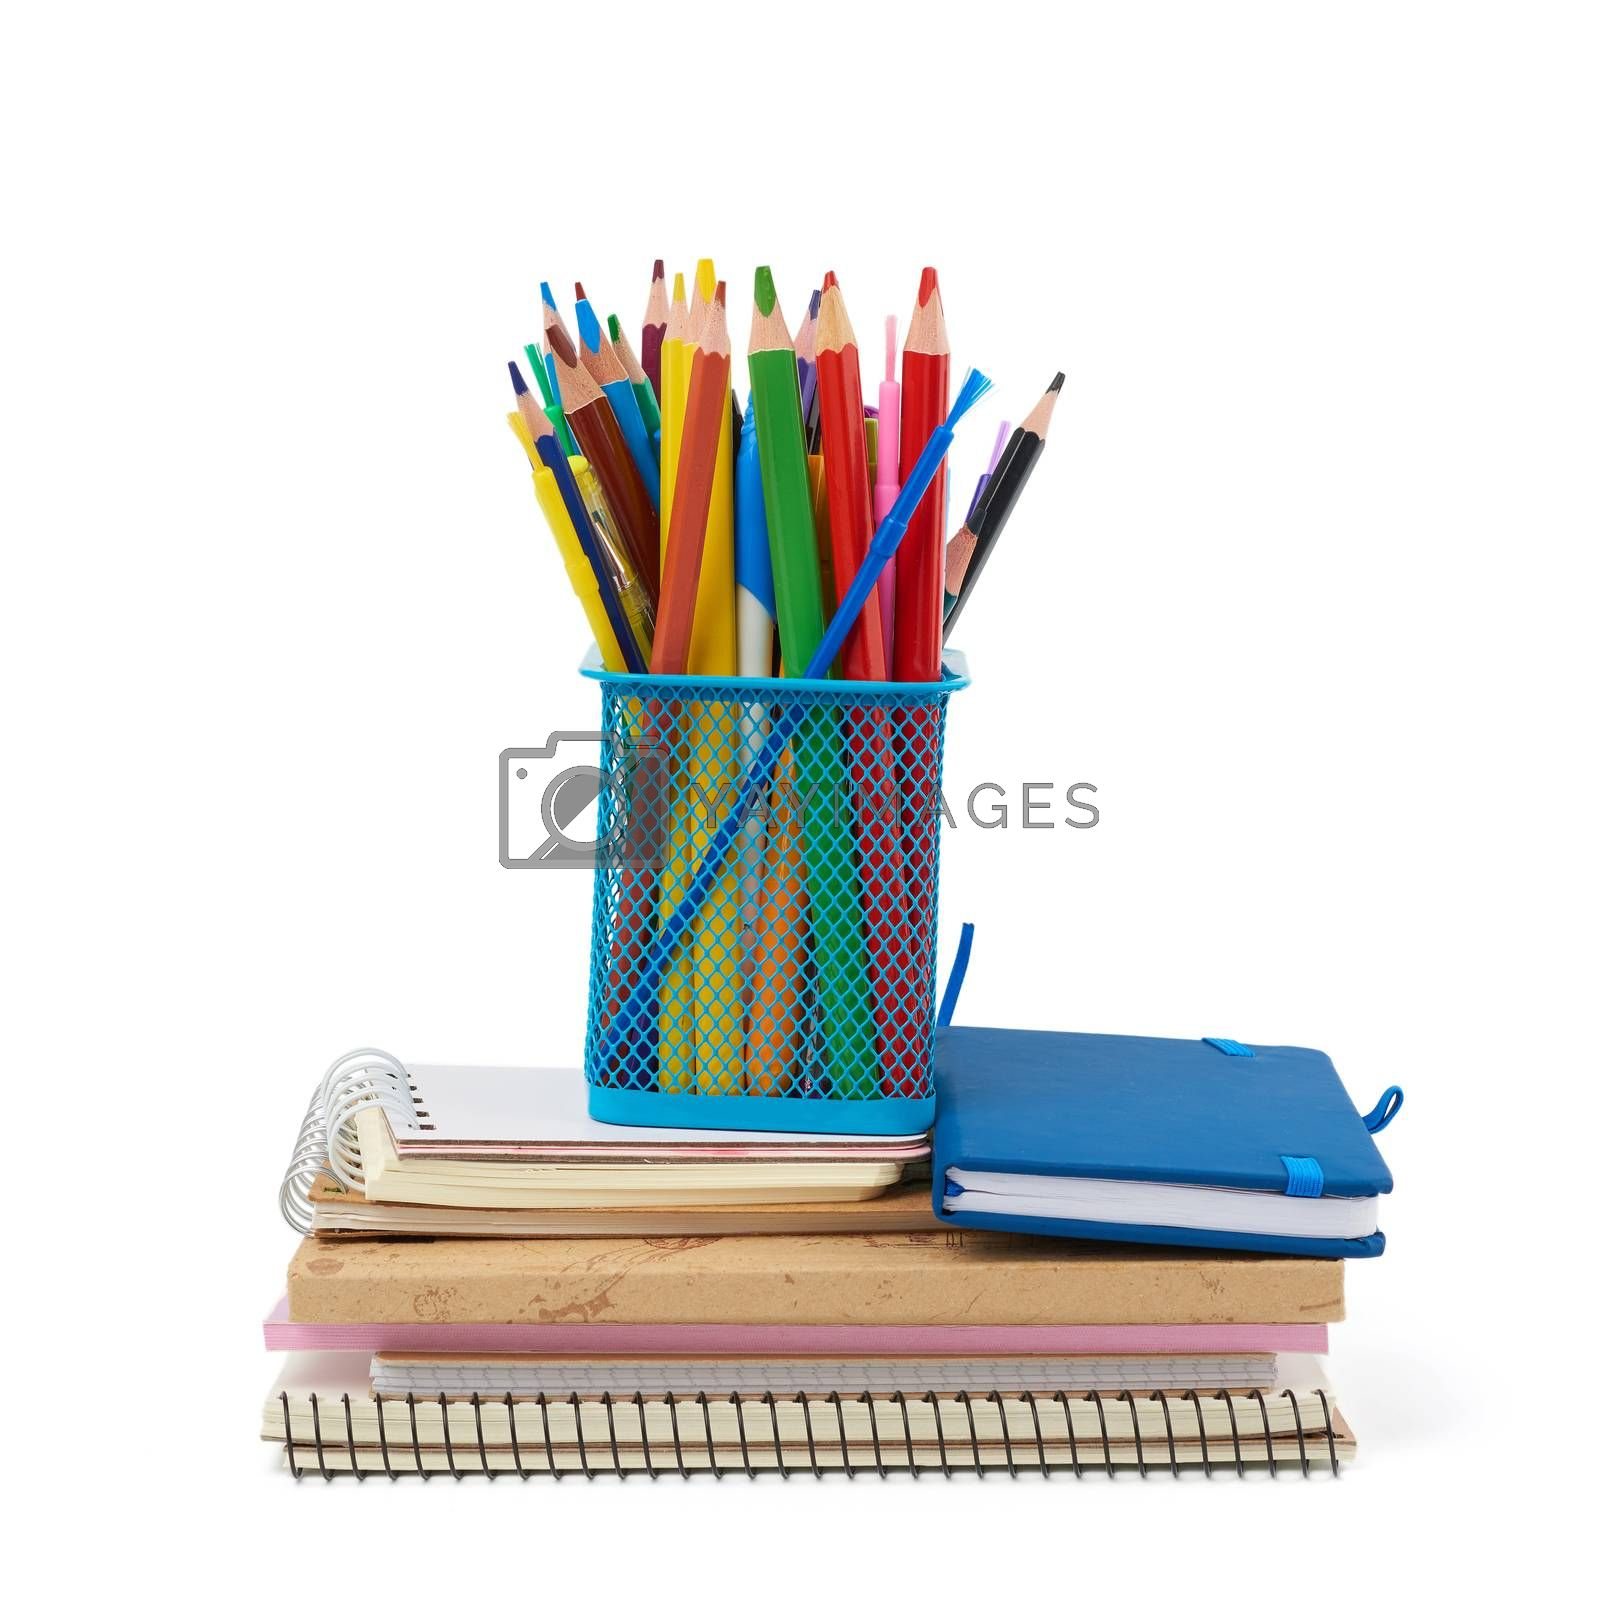 wooden multi-colored pencils, plastic pens and a stack of paper notebooks are isolated on a white background, stationery